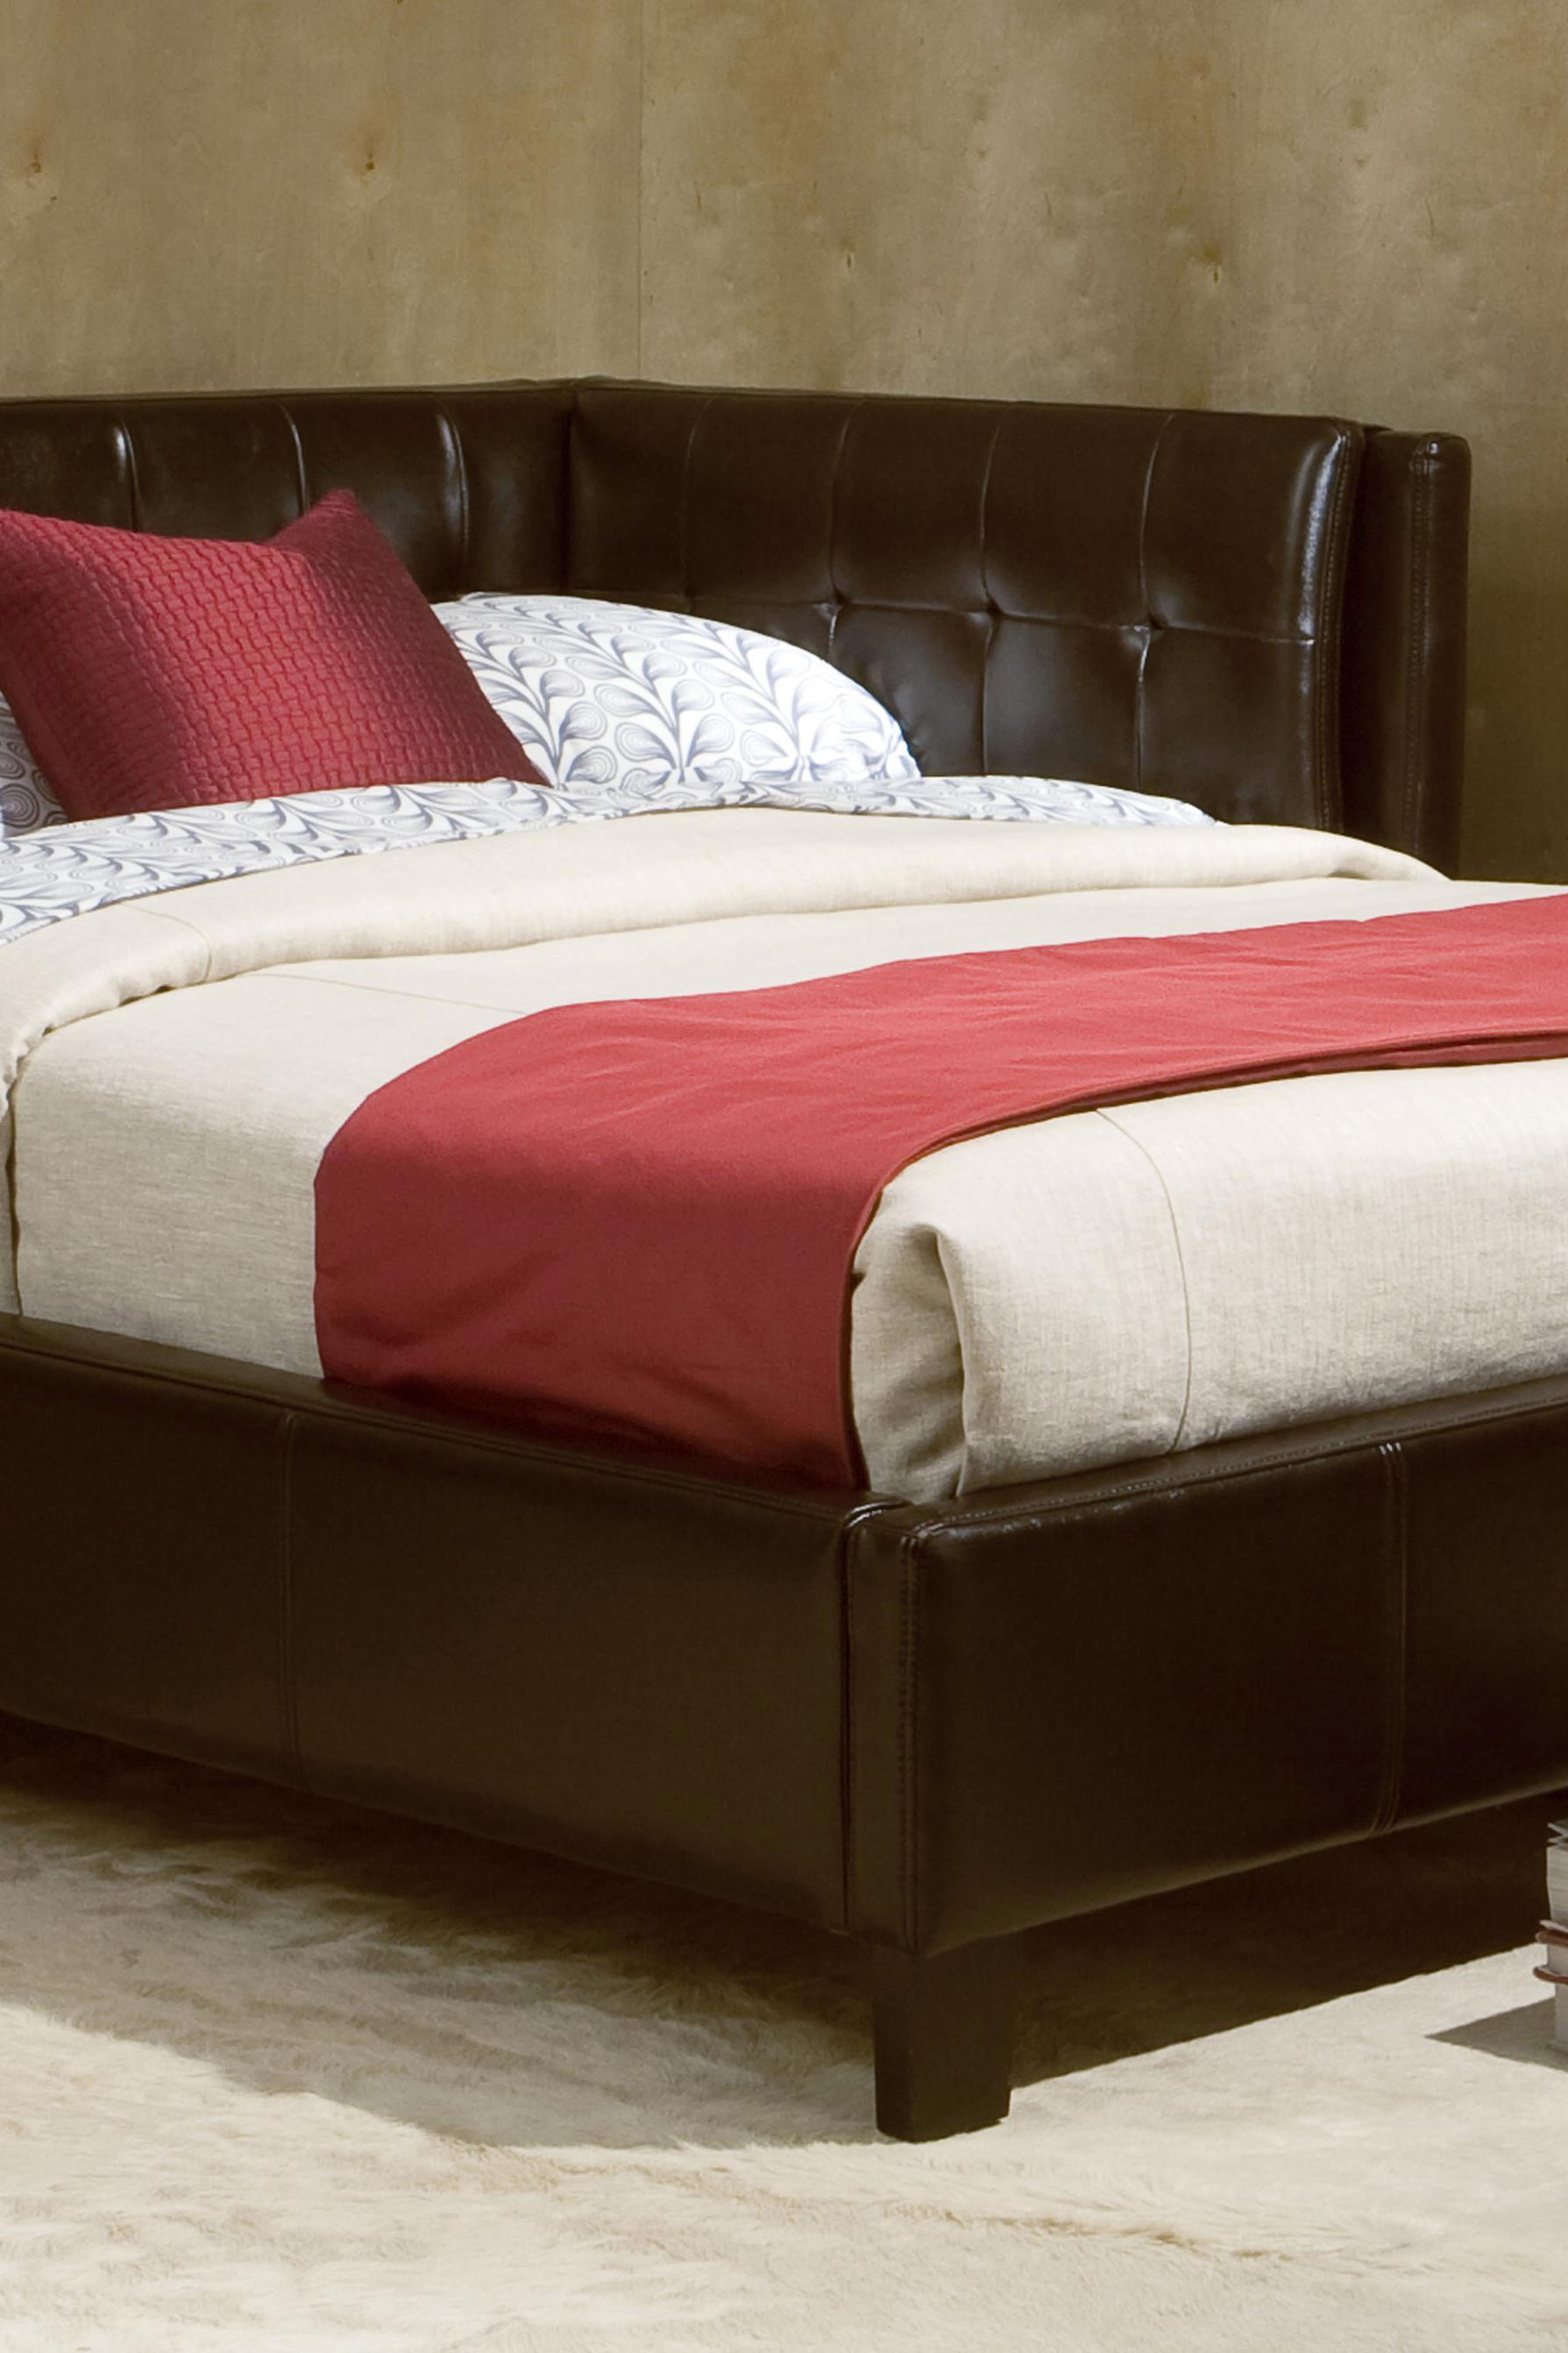 corner furniture trim threshold bed width daybed full height bedsfull rochester item products upholstered beds standard